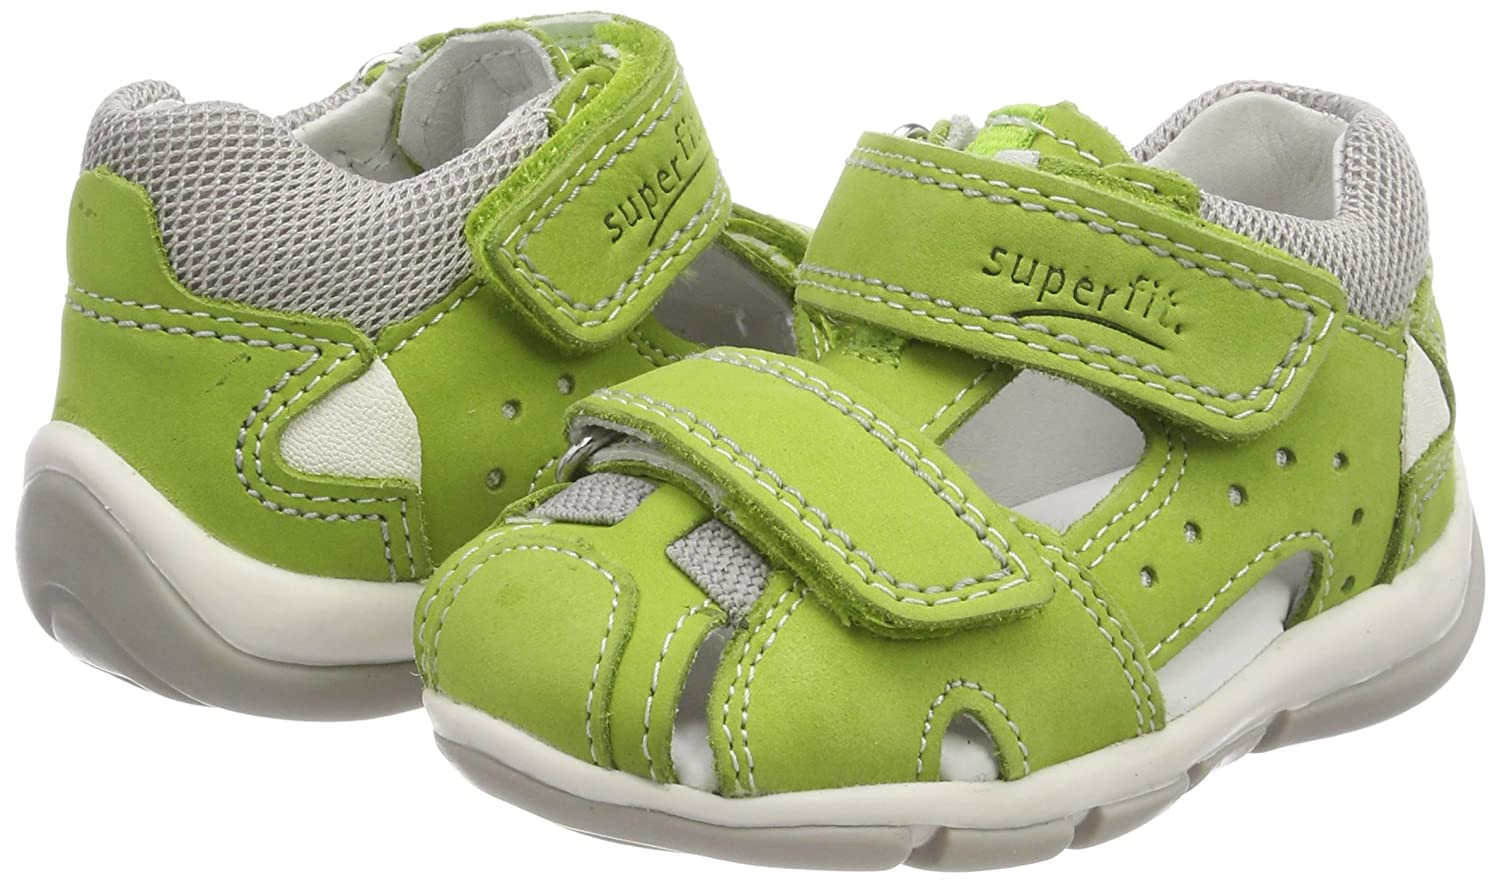 Superfit Baby Boys Freddy Sandals